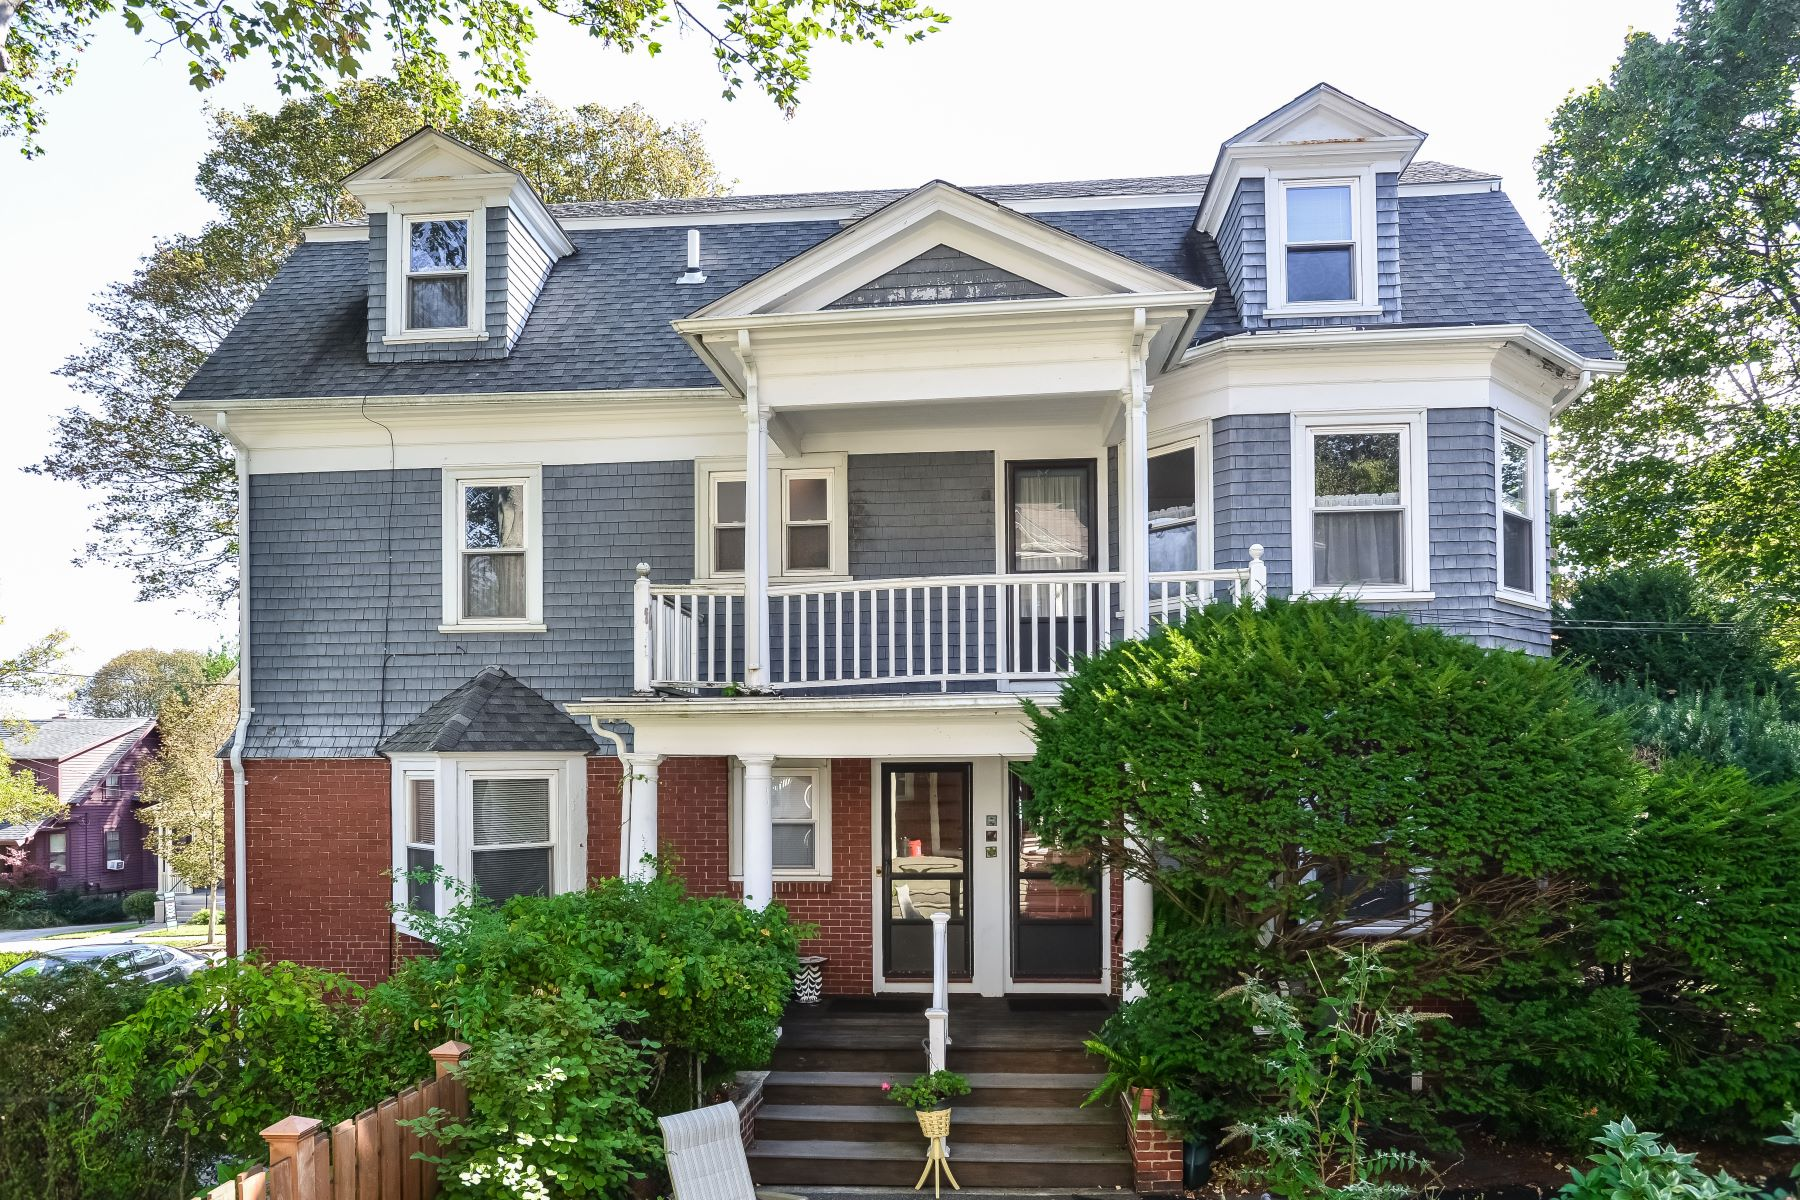 Multi-Family Home for Sale at 62 - 64 Forest St, East Side Of Prov, RI 62 - 64 Forest St Providence, Rhode Island 02906 United States